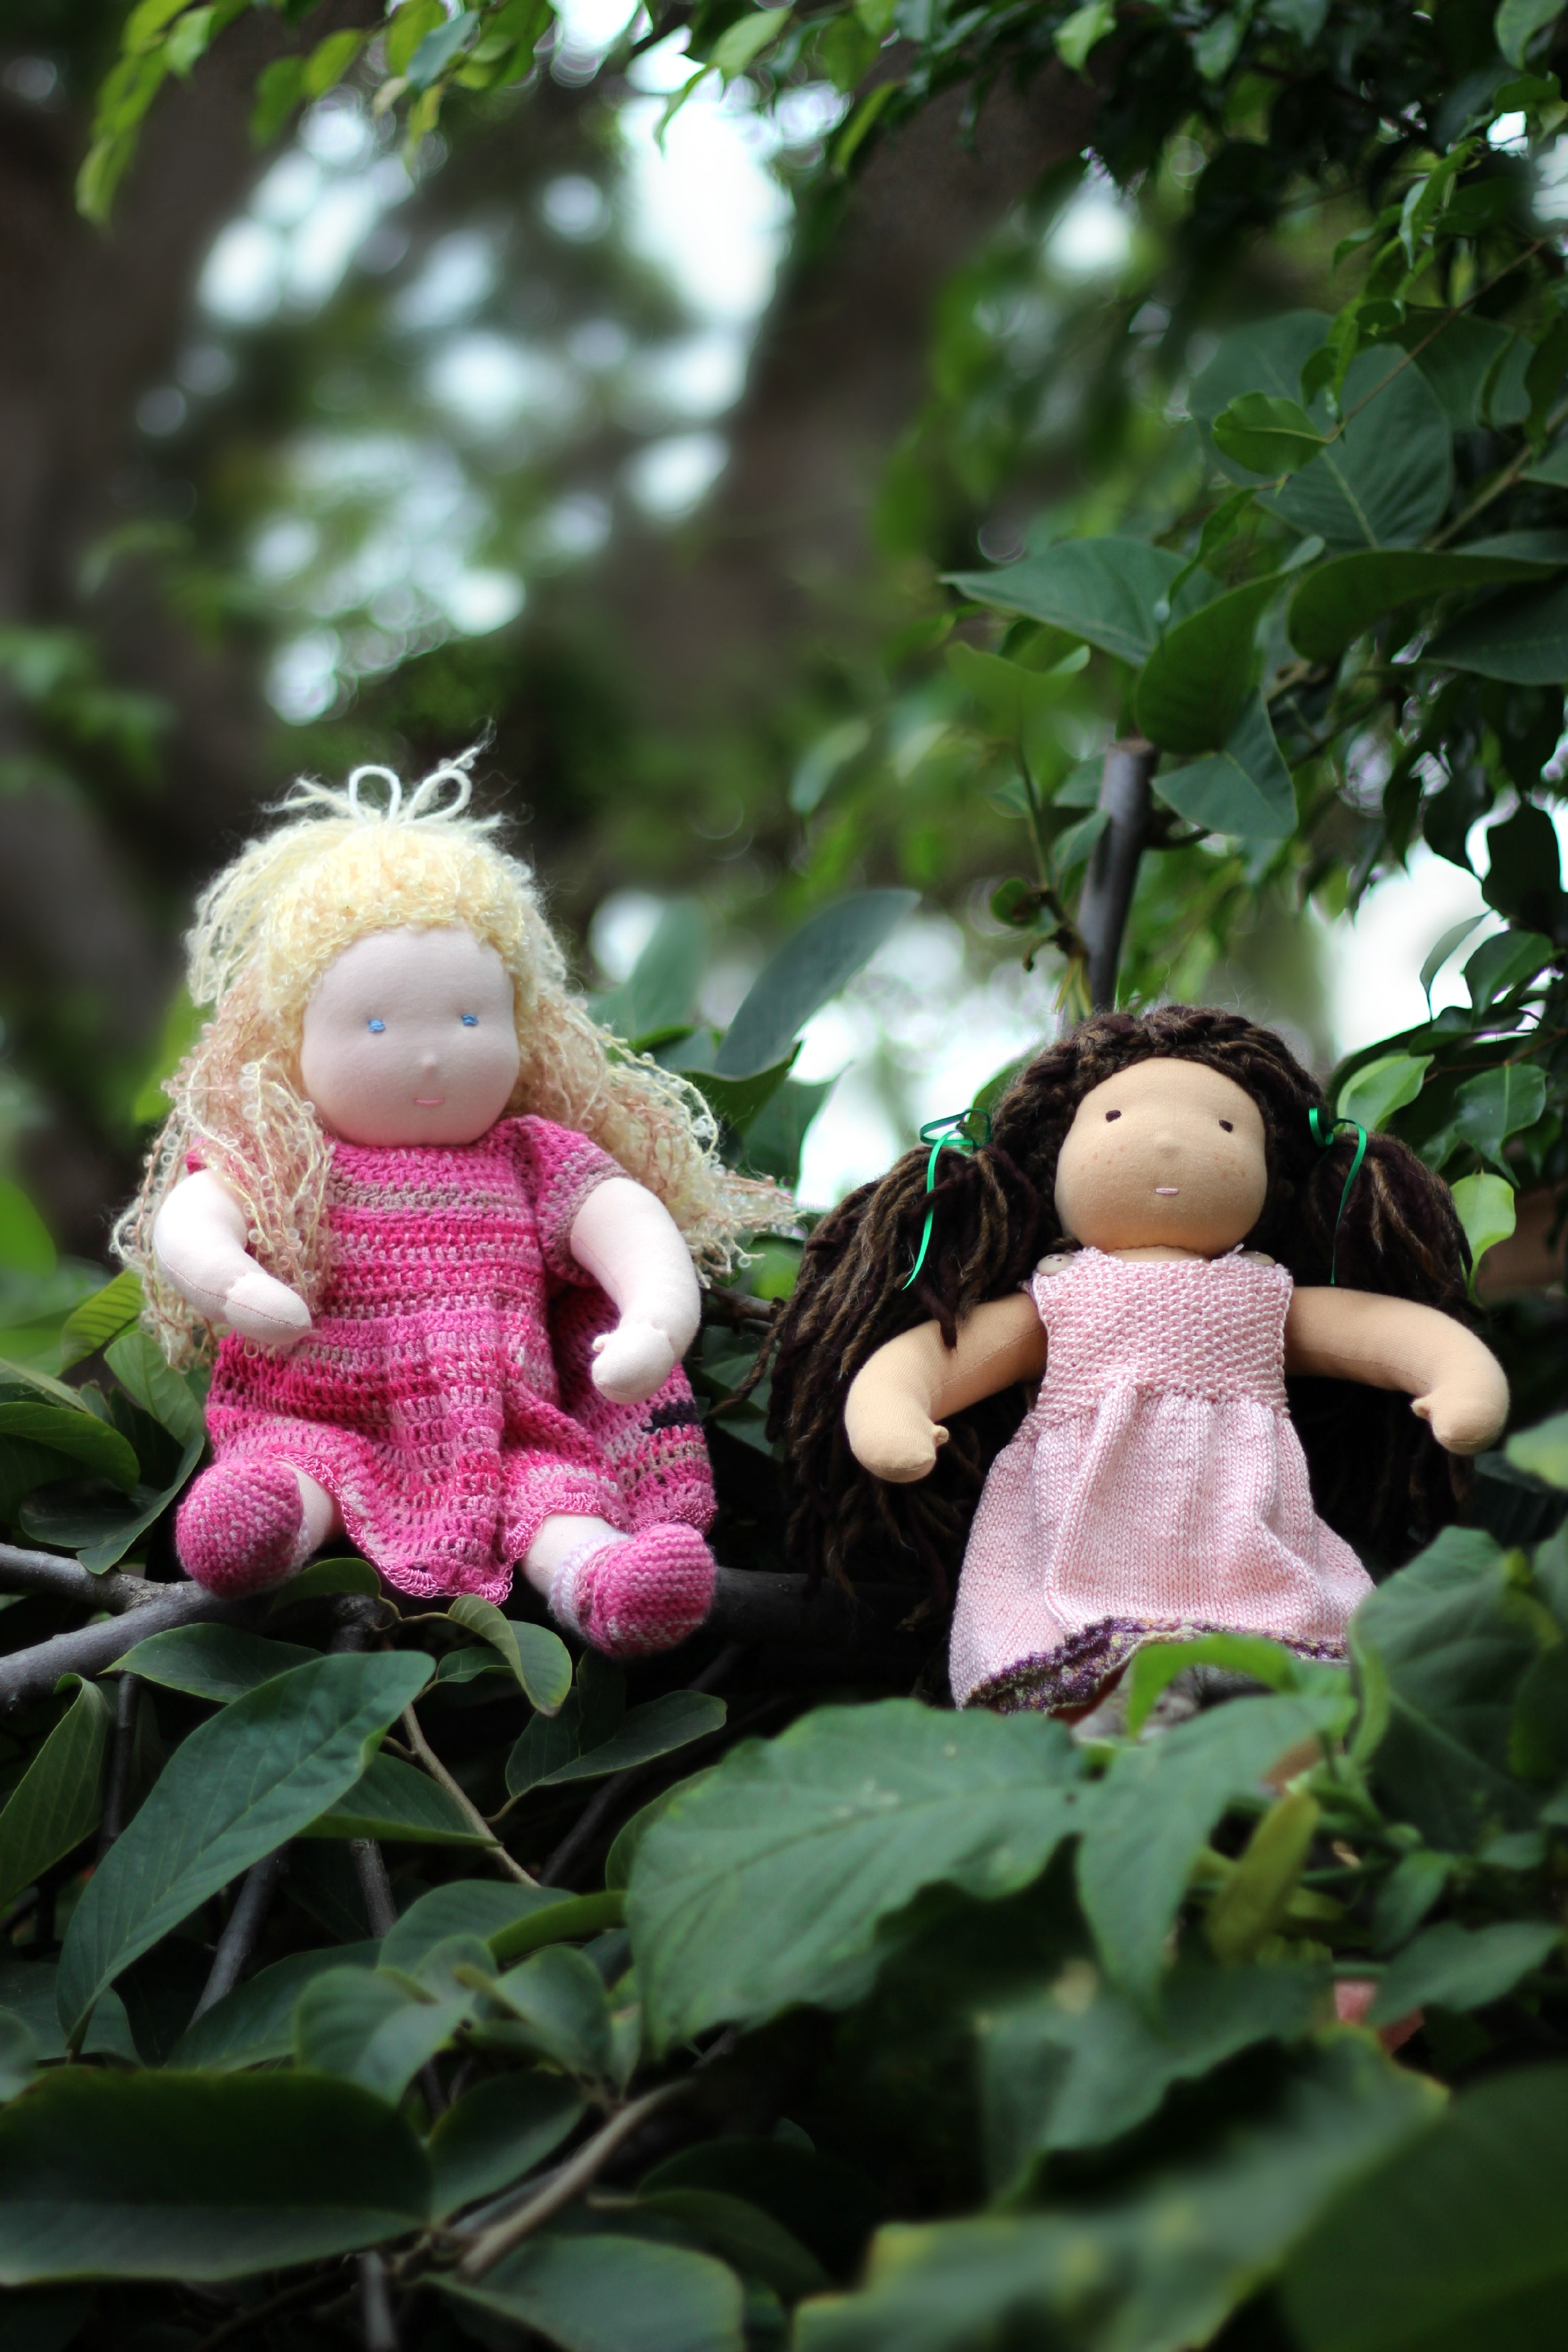 121107 Kimmy and Luka's 16 in Waldorf dolls on trees